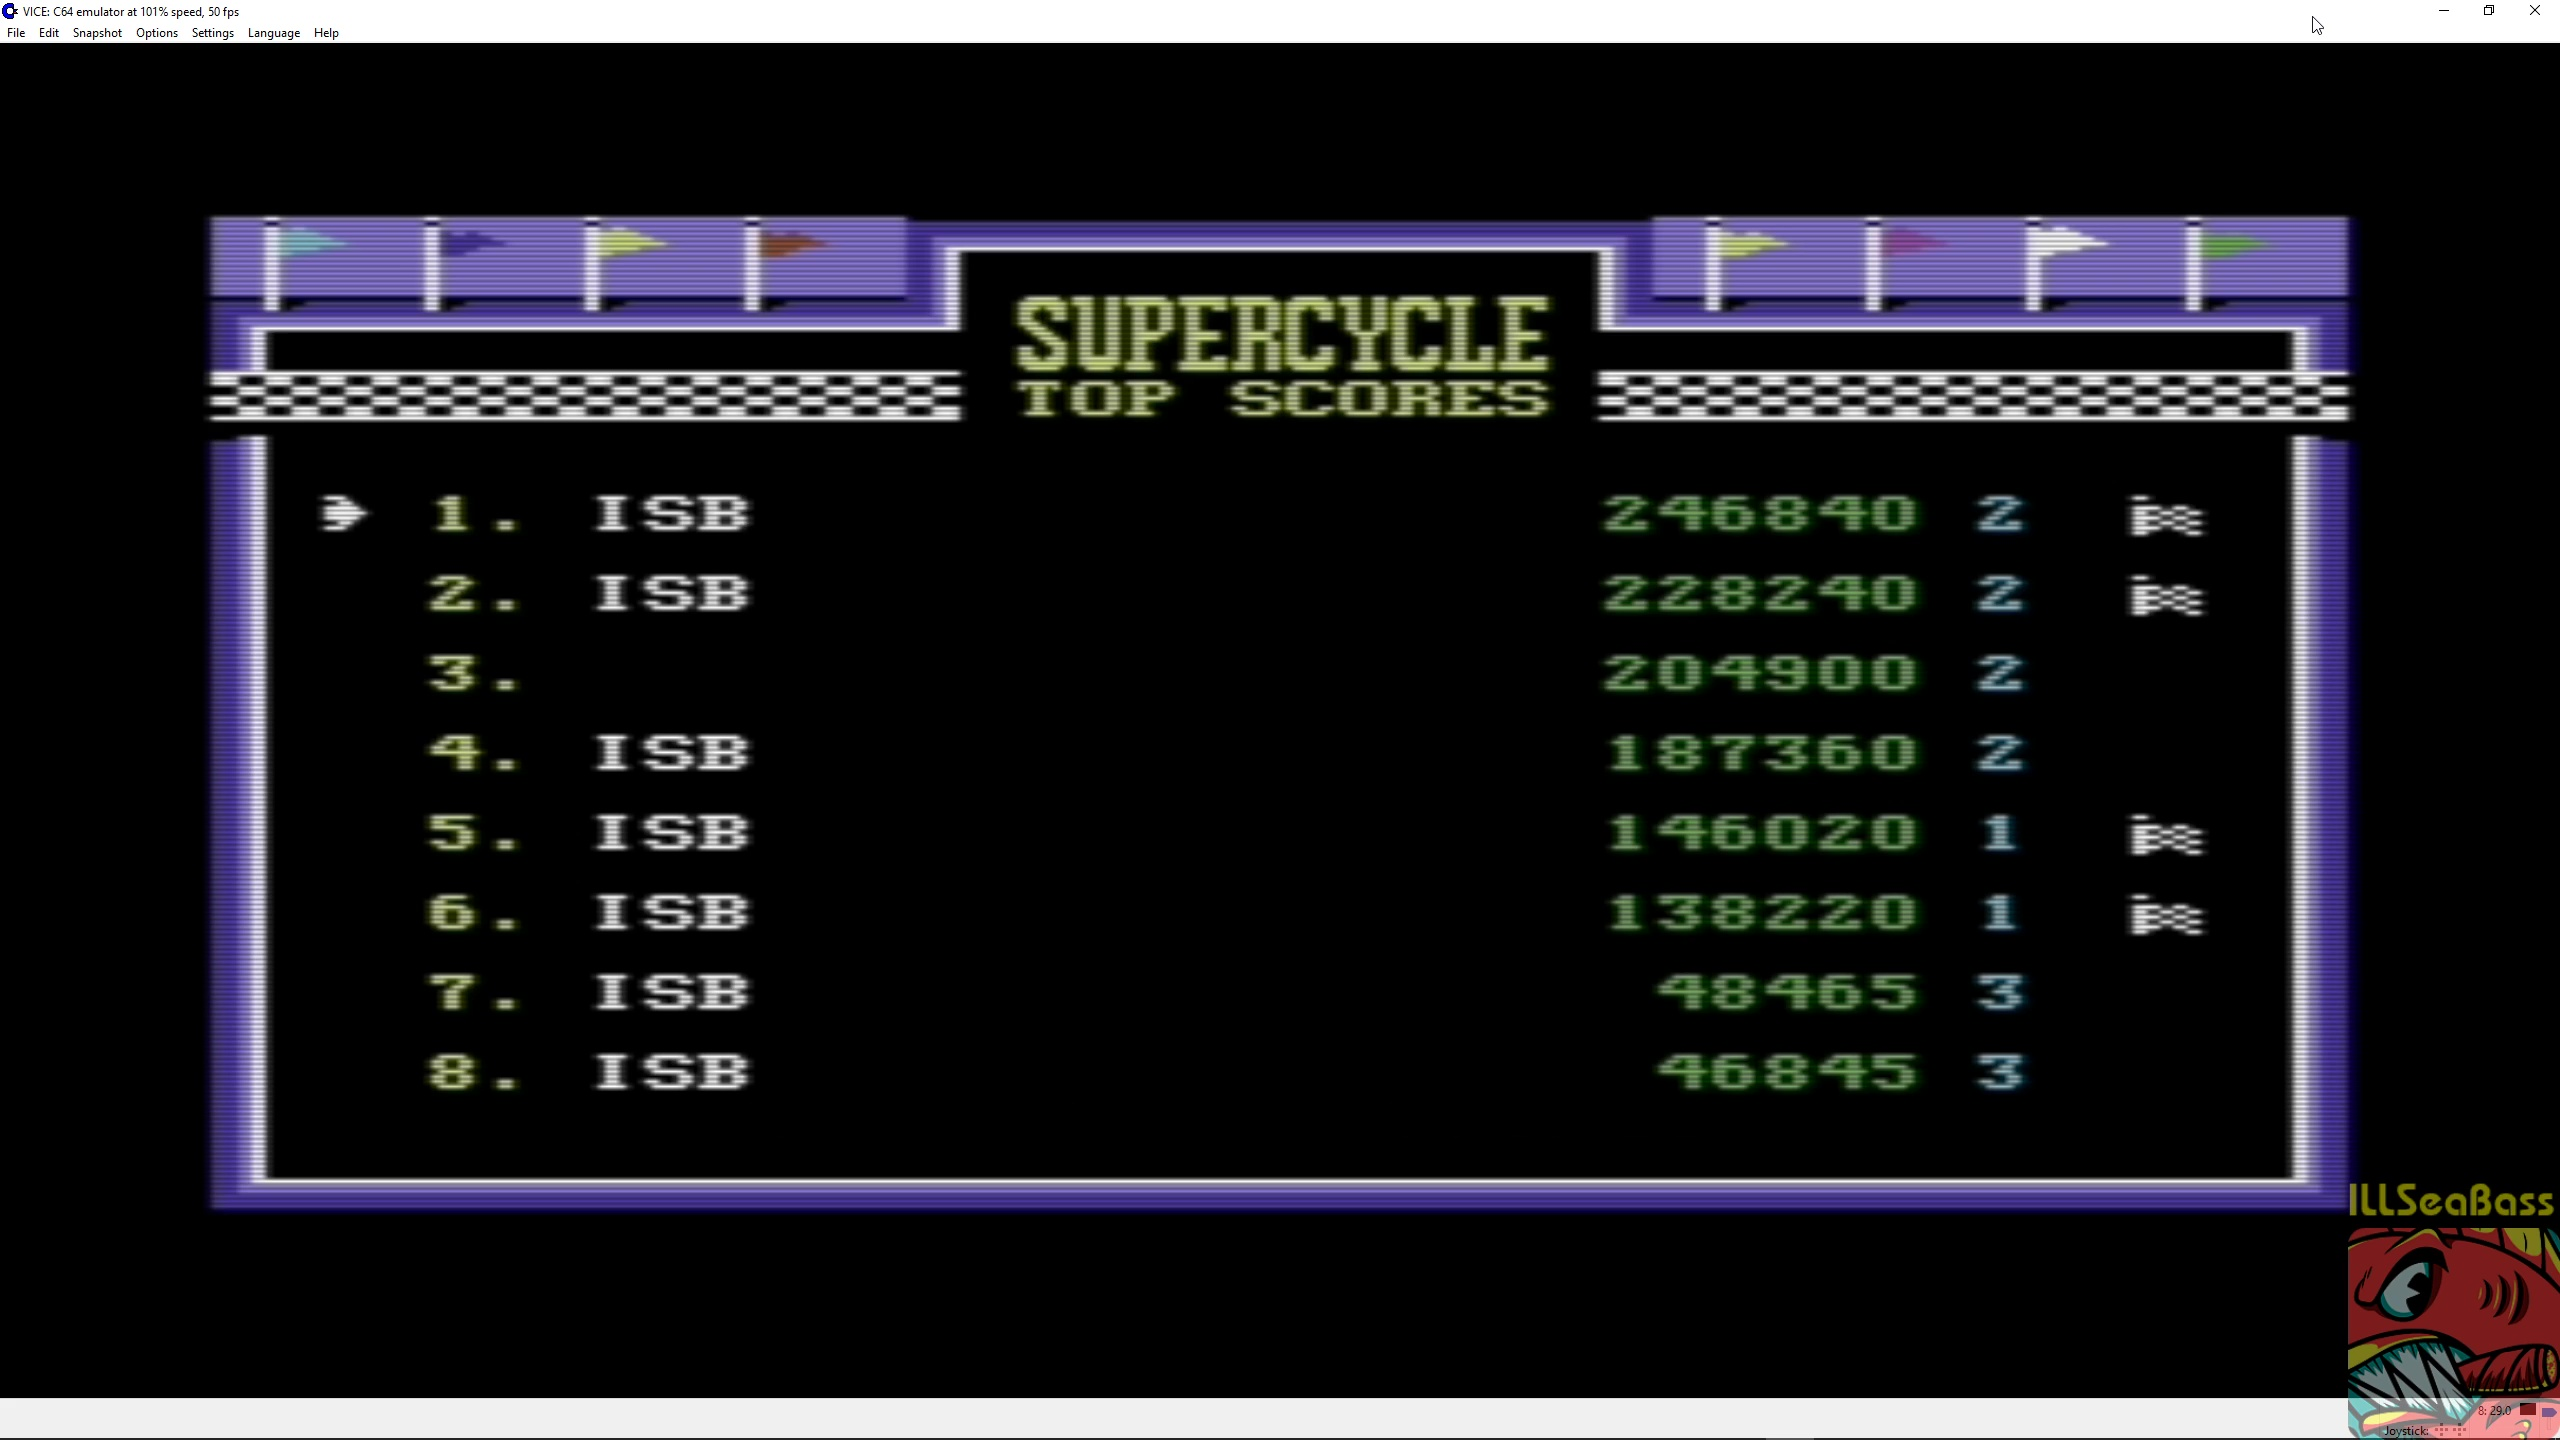 Super Cycle [Level 2 Start] 246,840 points